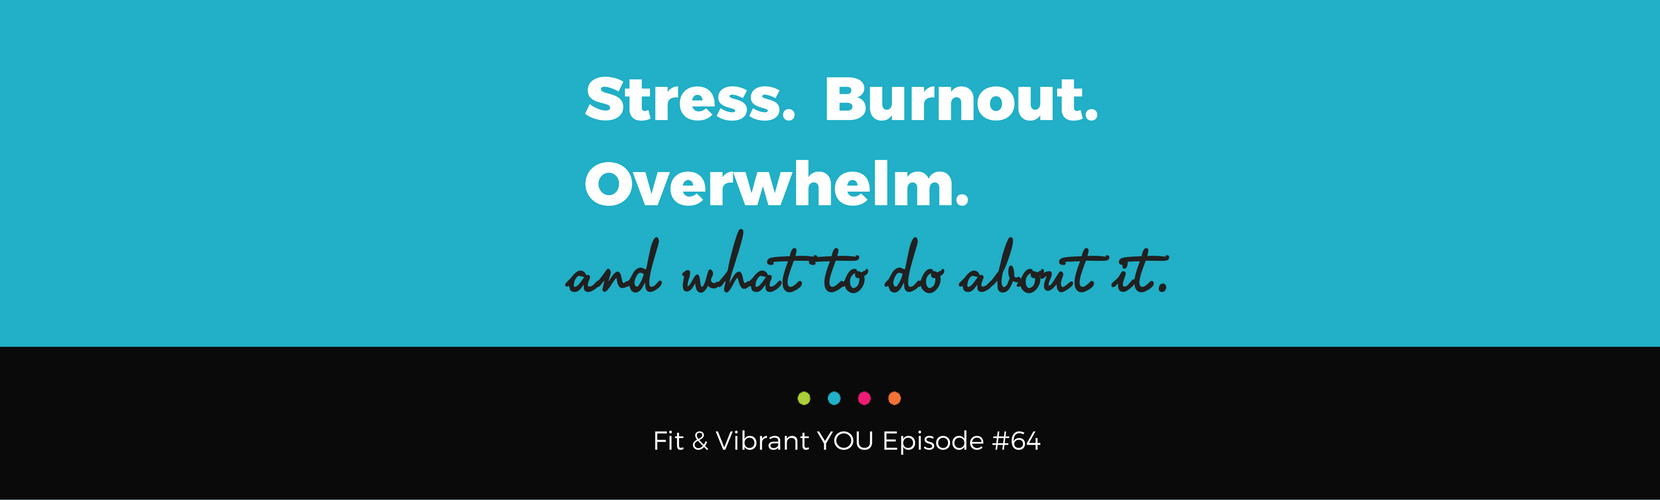 FVY 64: Stress. Burnout. Overwhelm.  And what to do about it.